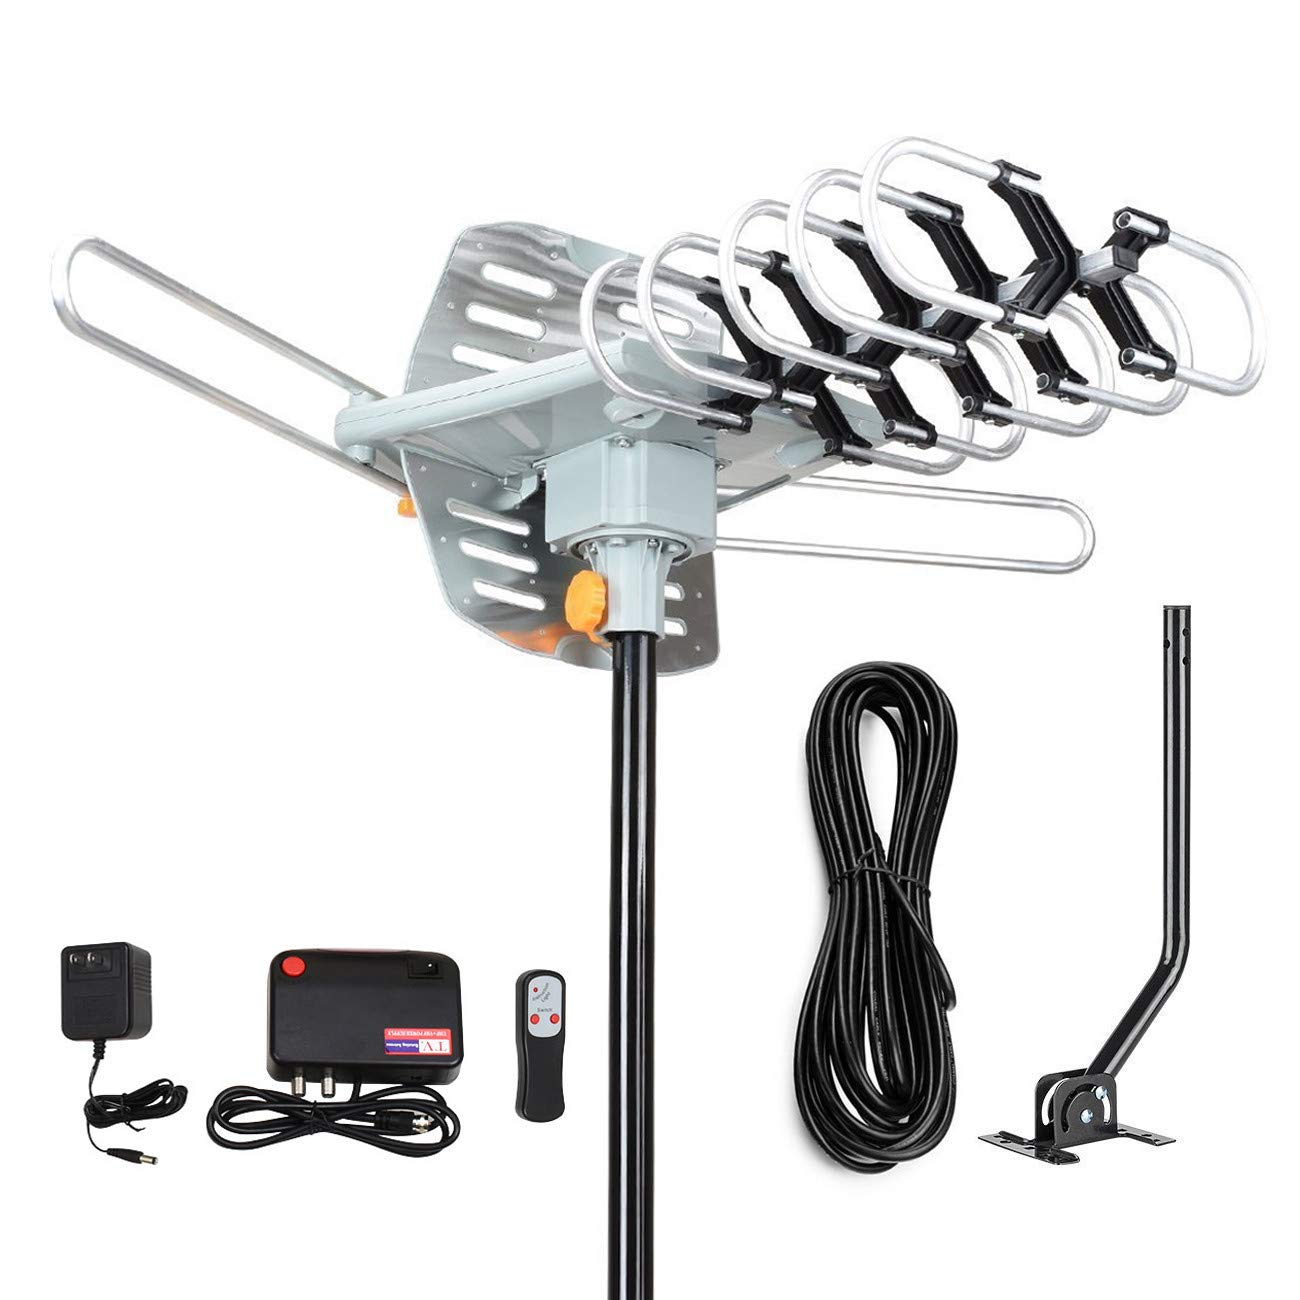 HDTV Antenna-150 Miles Range Amplified Digital Outdoor HDTV Antenna with Mounting Pole & 33FT RG6 Coax Cable-360 Degree Rotation Wireless Remote-Snap-On Installation Support 2 TVs